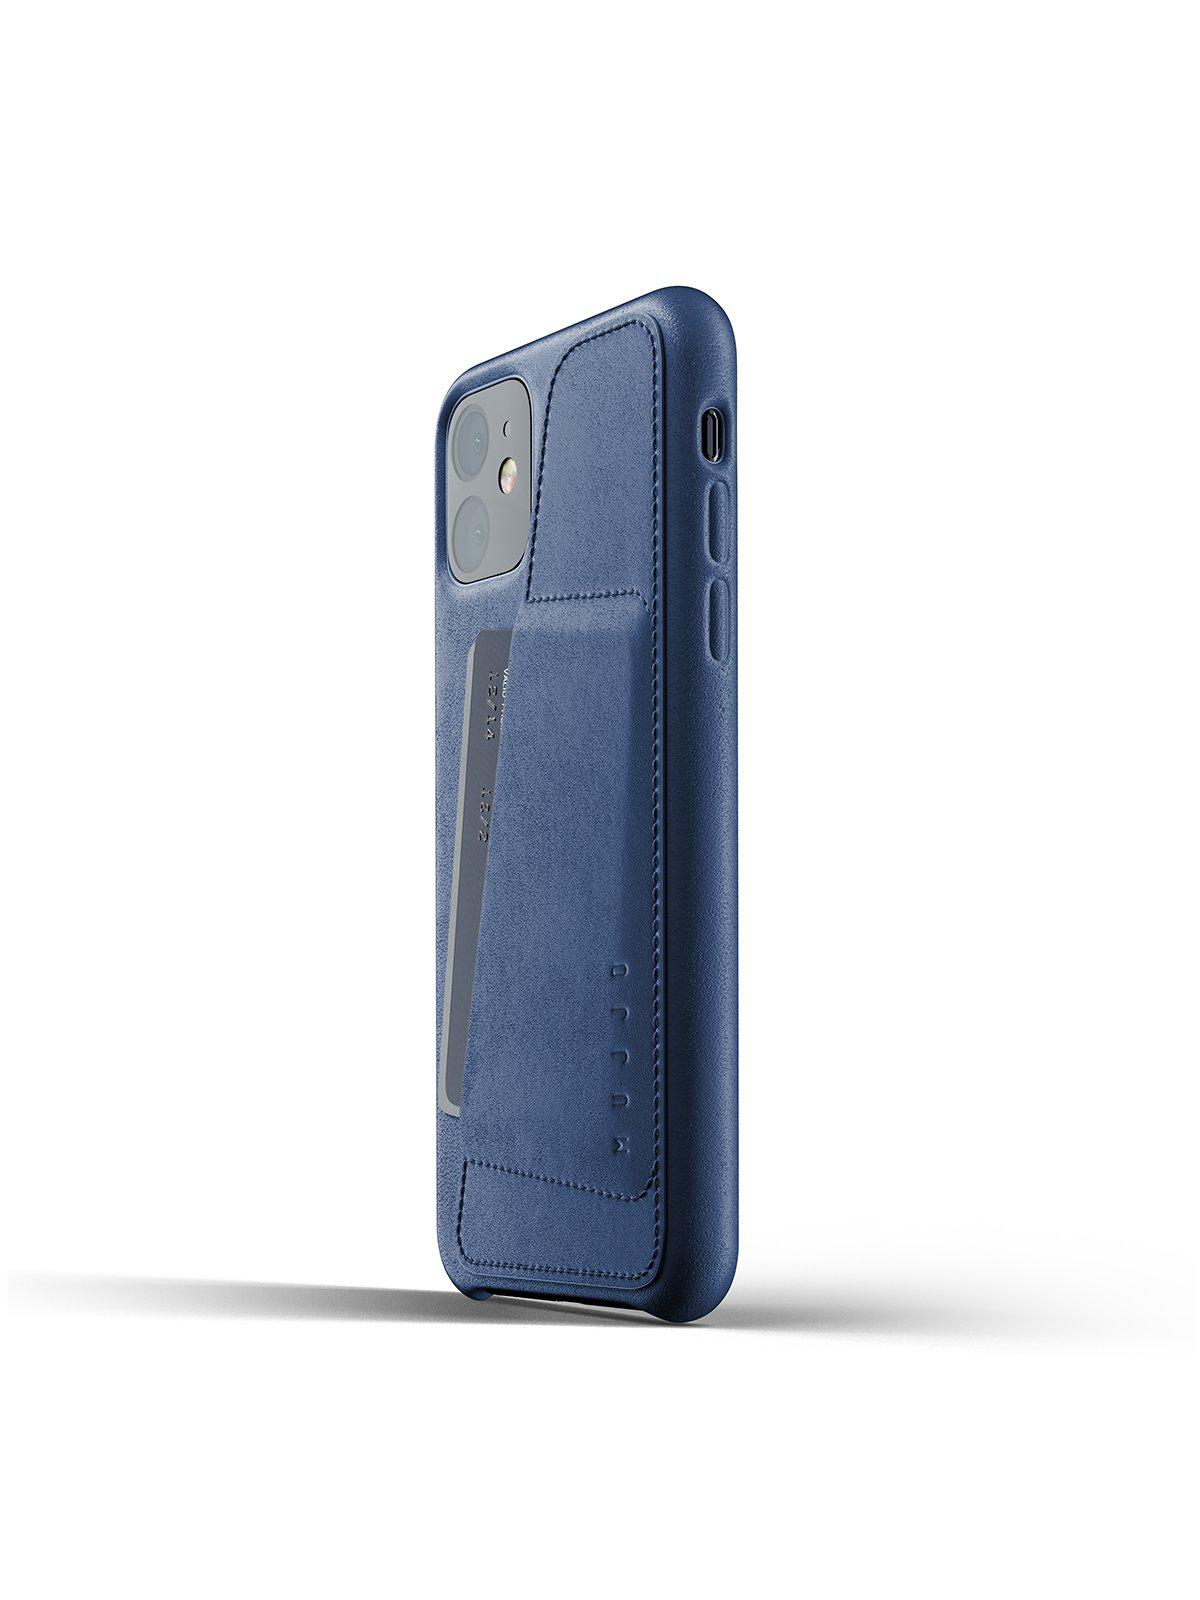 Mujjo Full Leather Wallet Case for iPhone 11 Monaco Blue - MORE by Morello Indonesia